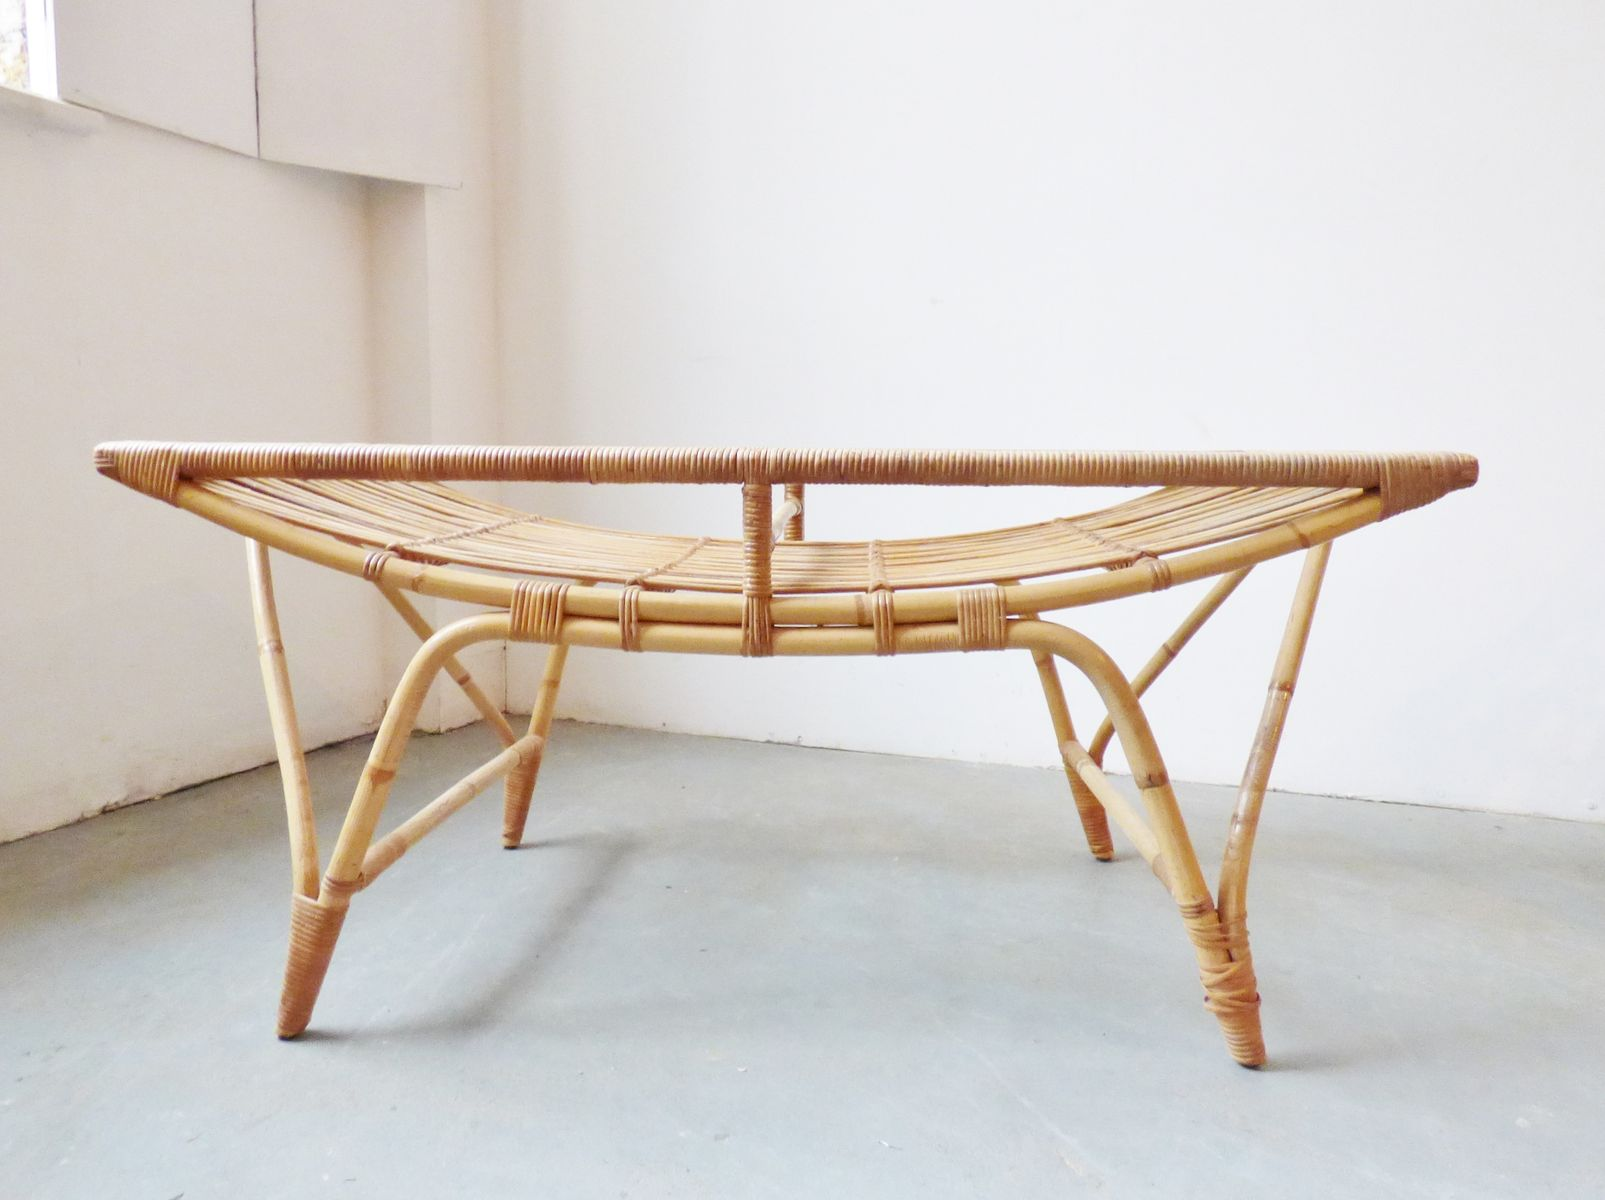 Vintage Danish Bamboo Coffee Table with Glass Top for sale at Pamono -> Table Basse Vintage Jimi